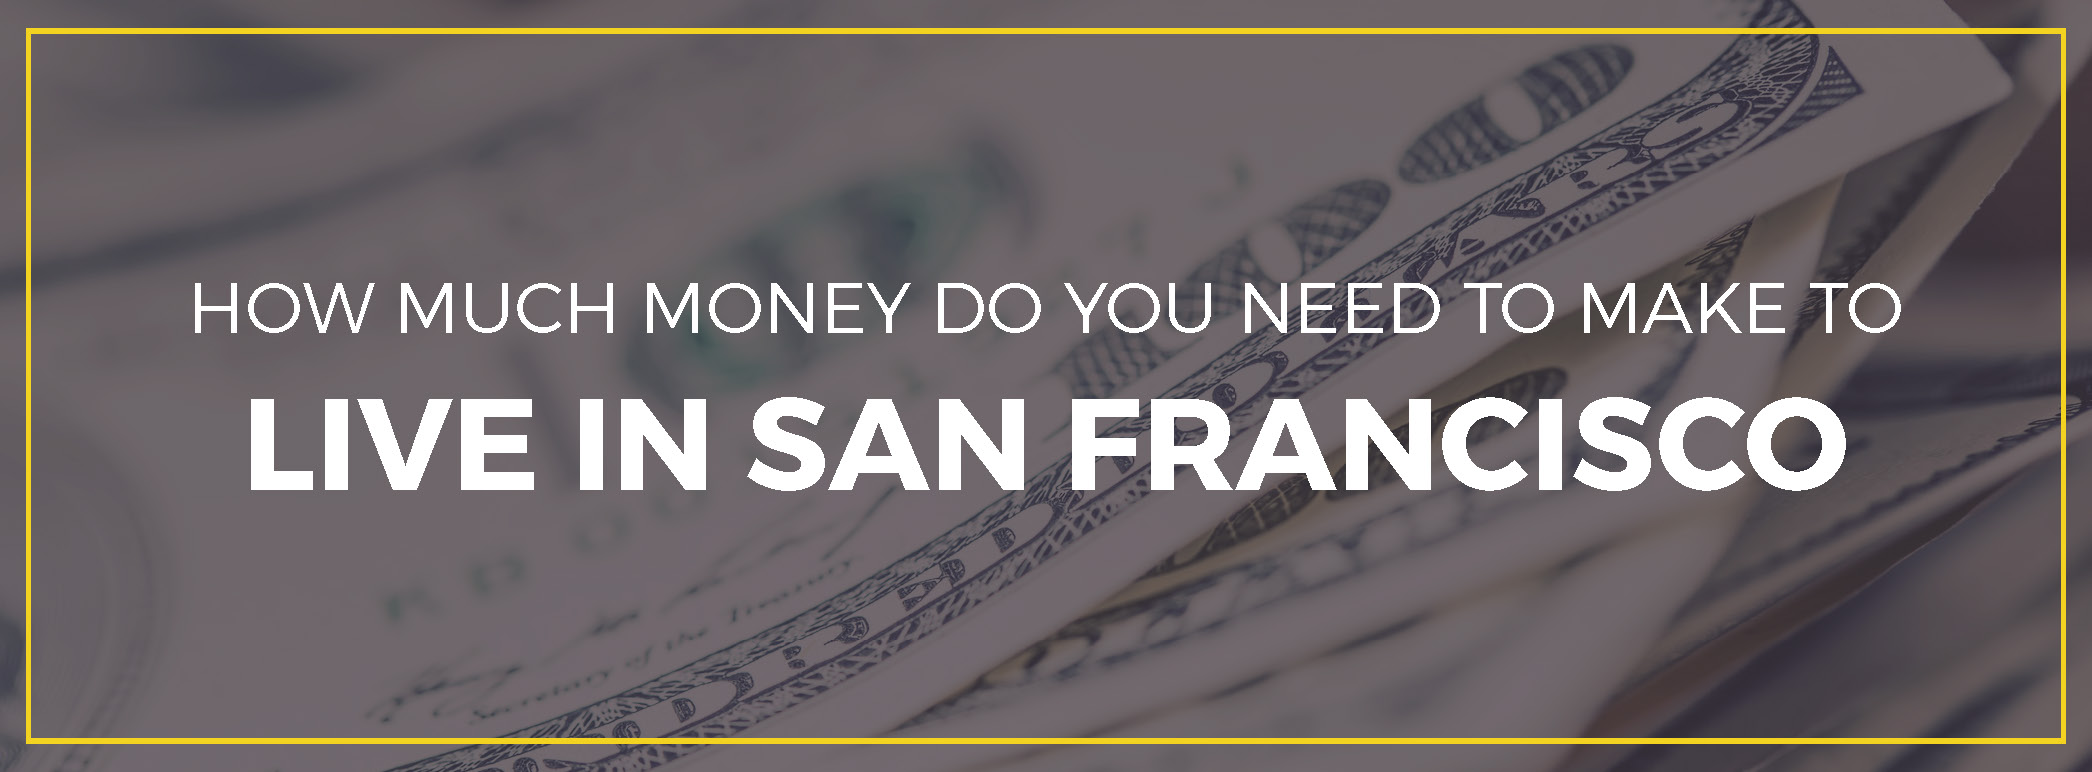 How much money you need to make to live in San Francisco